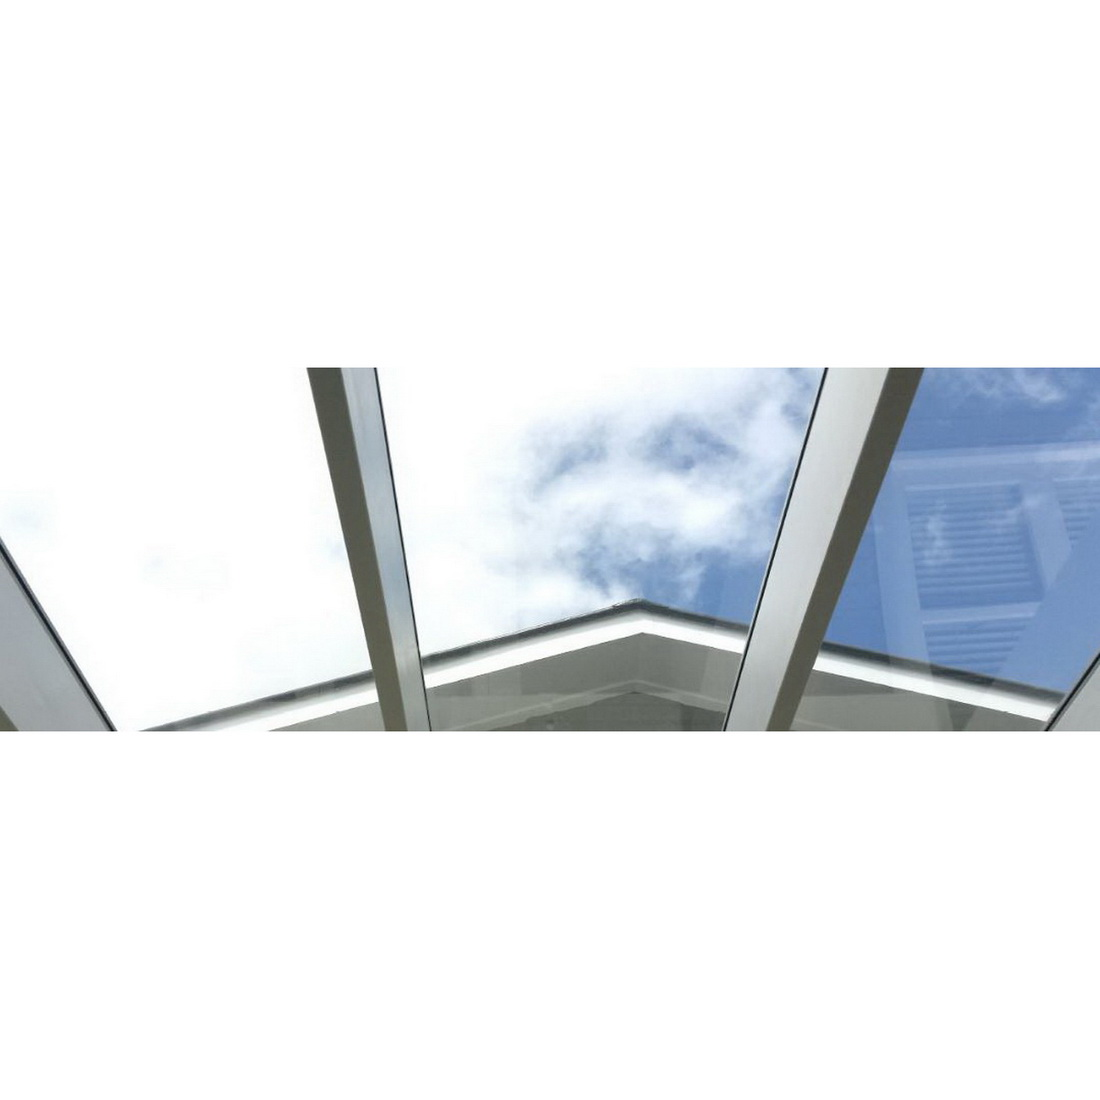 CLEARVUE Roofing Panel 3700 x 586 x 6mm Clear CLV-06.0-CLR-3700X6